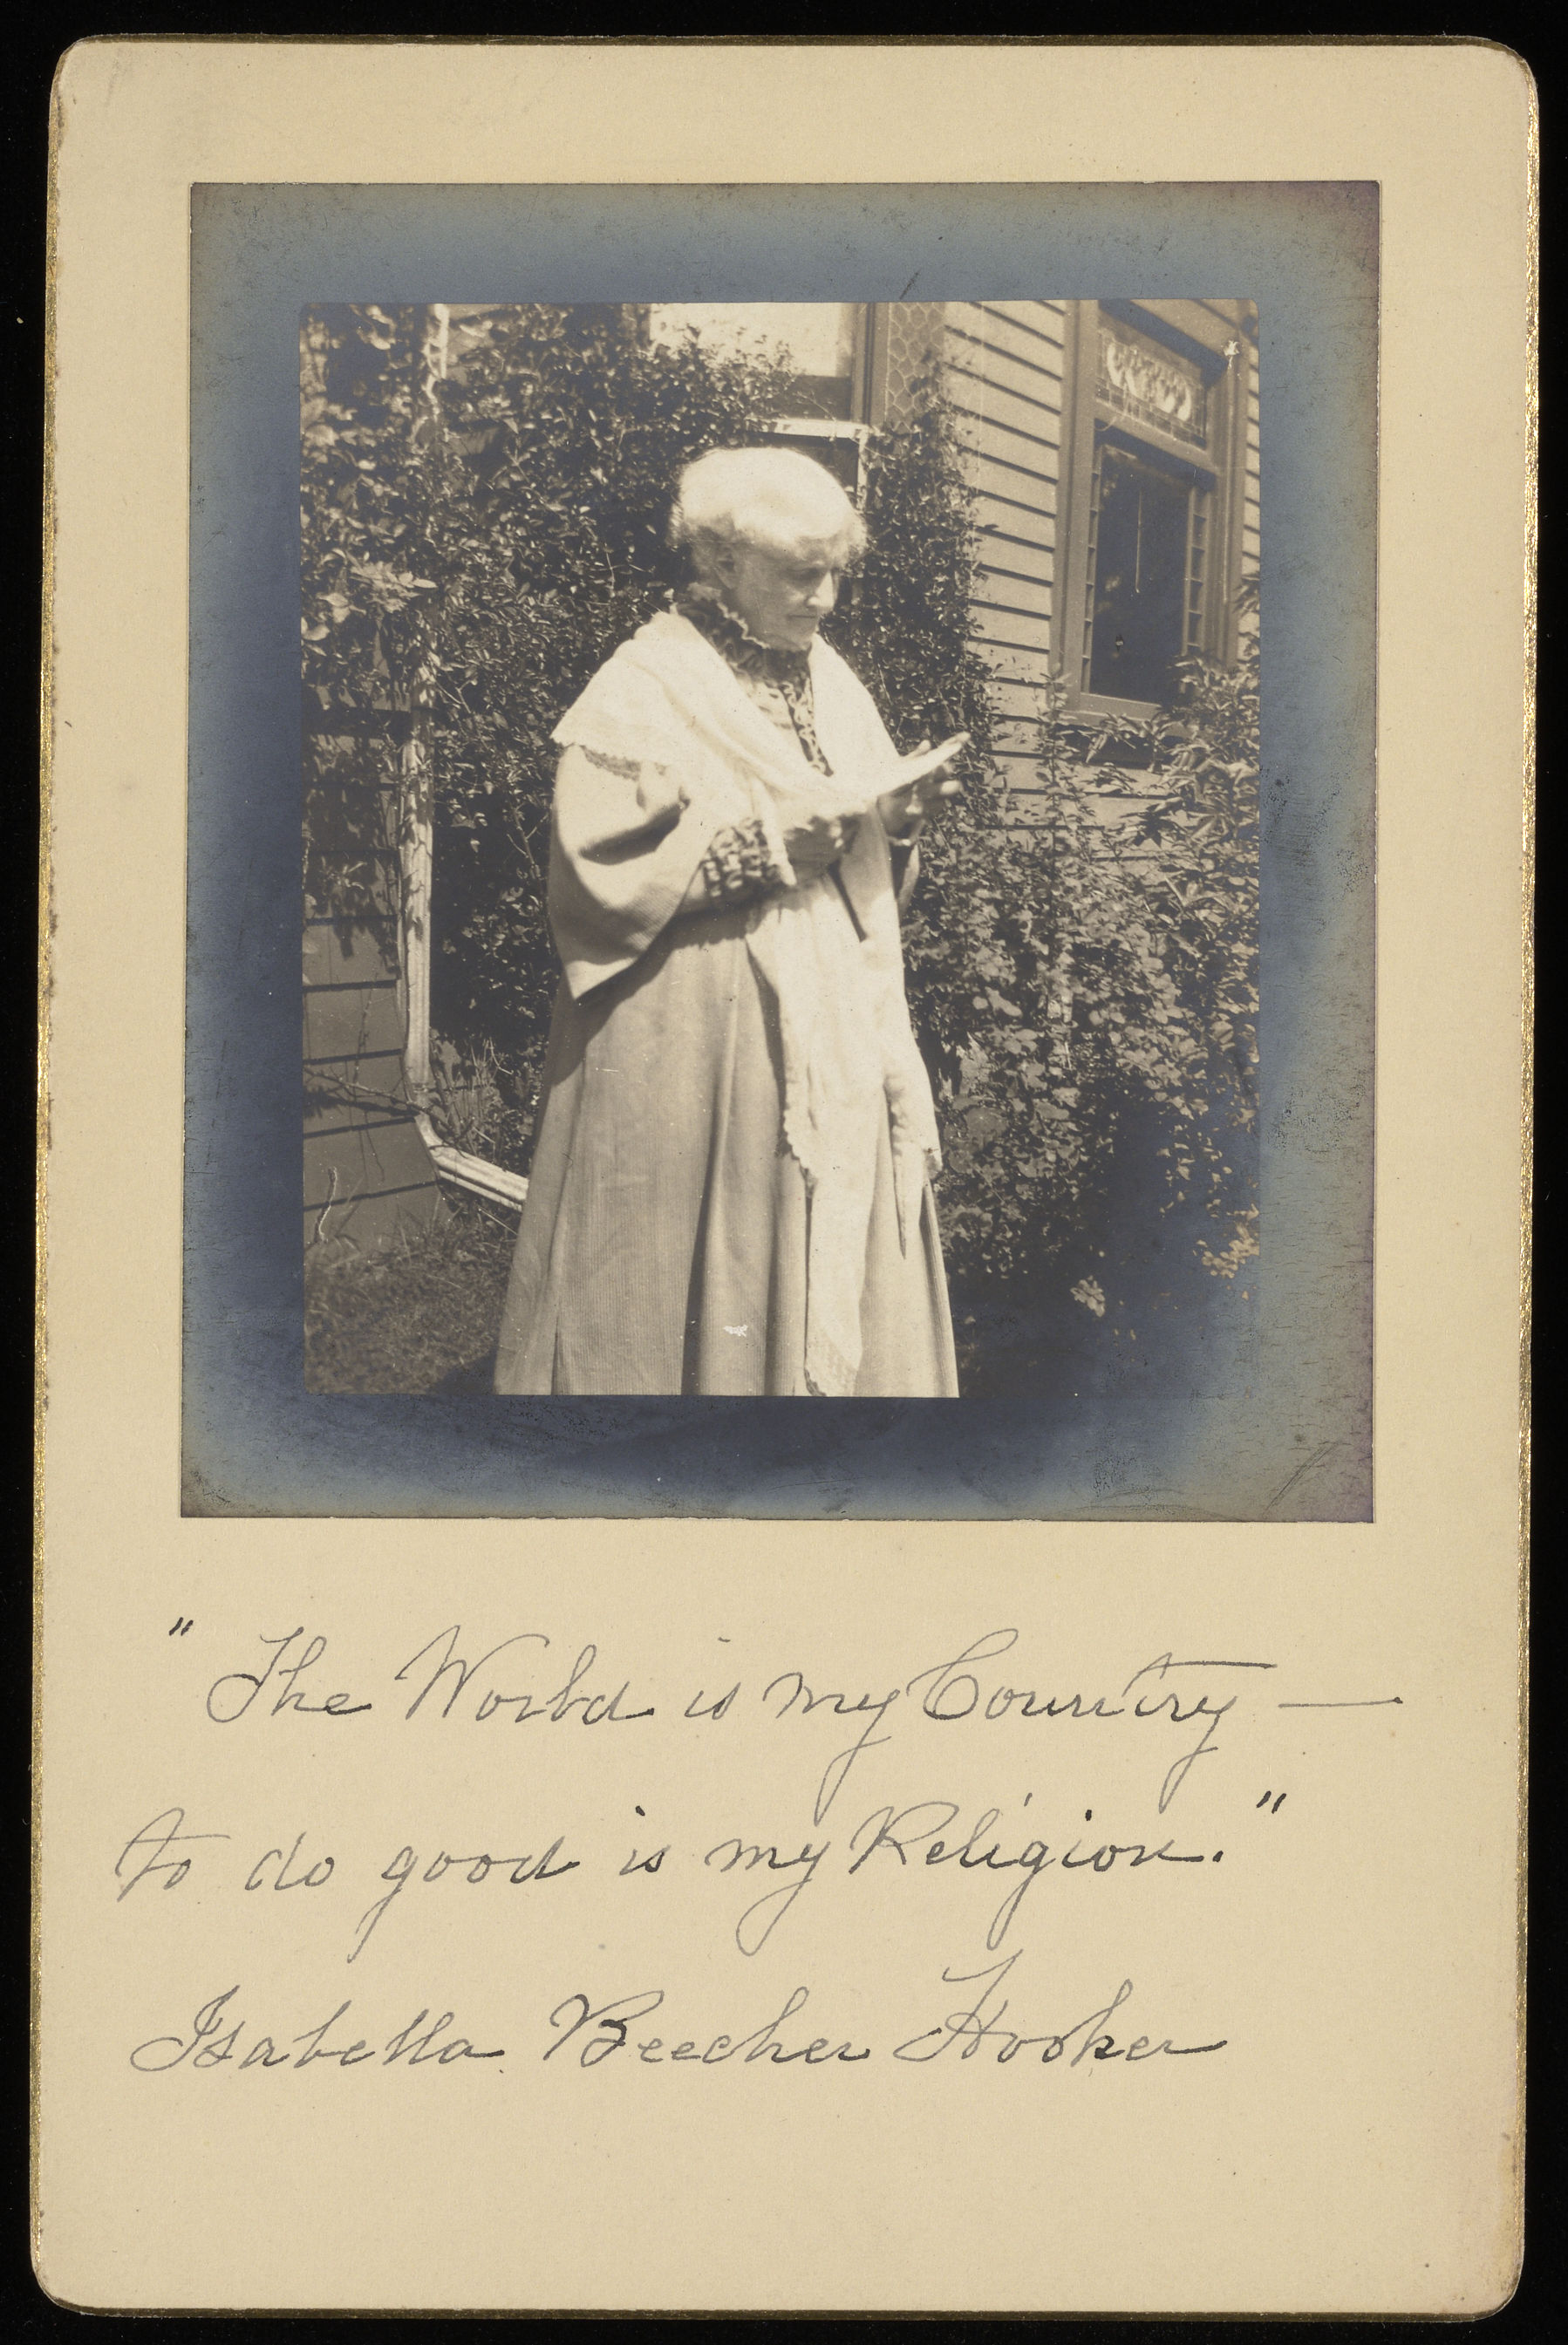 "image of Isabella Beecher Hooker standing outside a house, looking at a letter in her hands. Handwritten inscription at the bottom: ""The World is my Country- To do good is my religion. Isabella Beecher Hooker"""